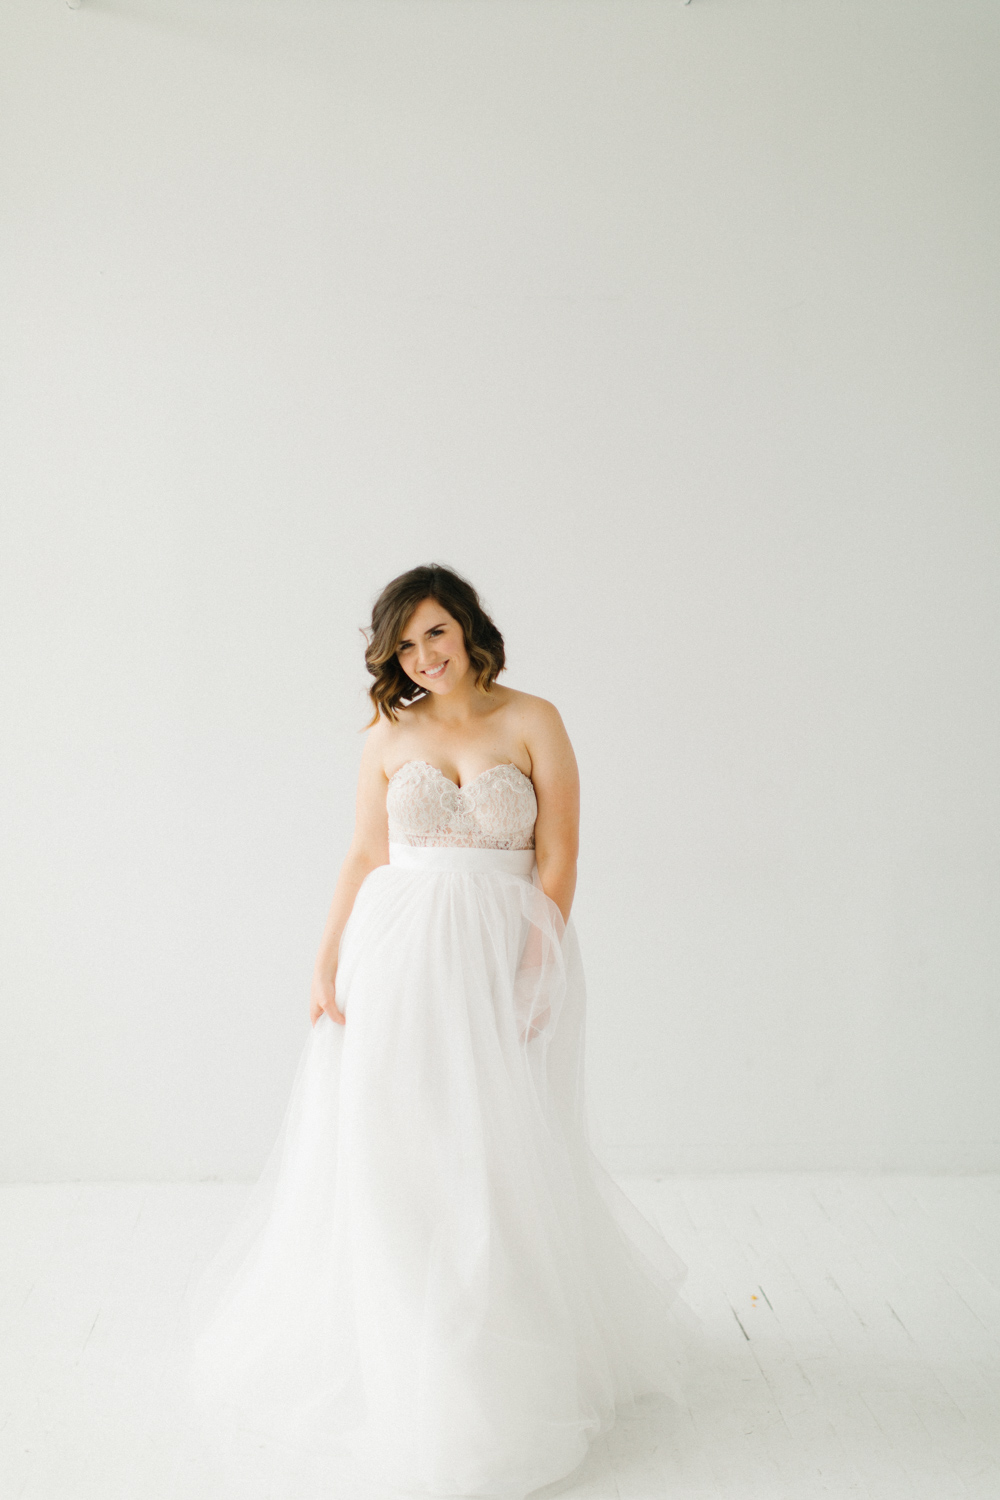 Seattle Fine Art Wedding Photographer | Seattle Downtown White Studio Bridal Session | Stunning Wedding Bouquet | Seattle Bride | Seattle Wedding | Photography Studio Space | Emma Rose Company Wedding Photography-15.jpg